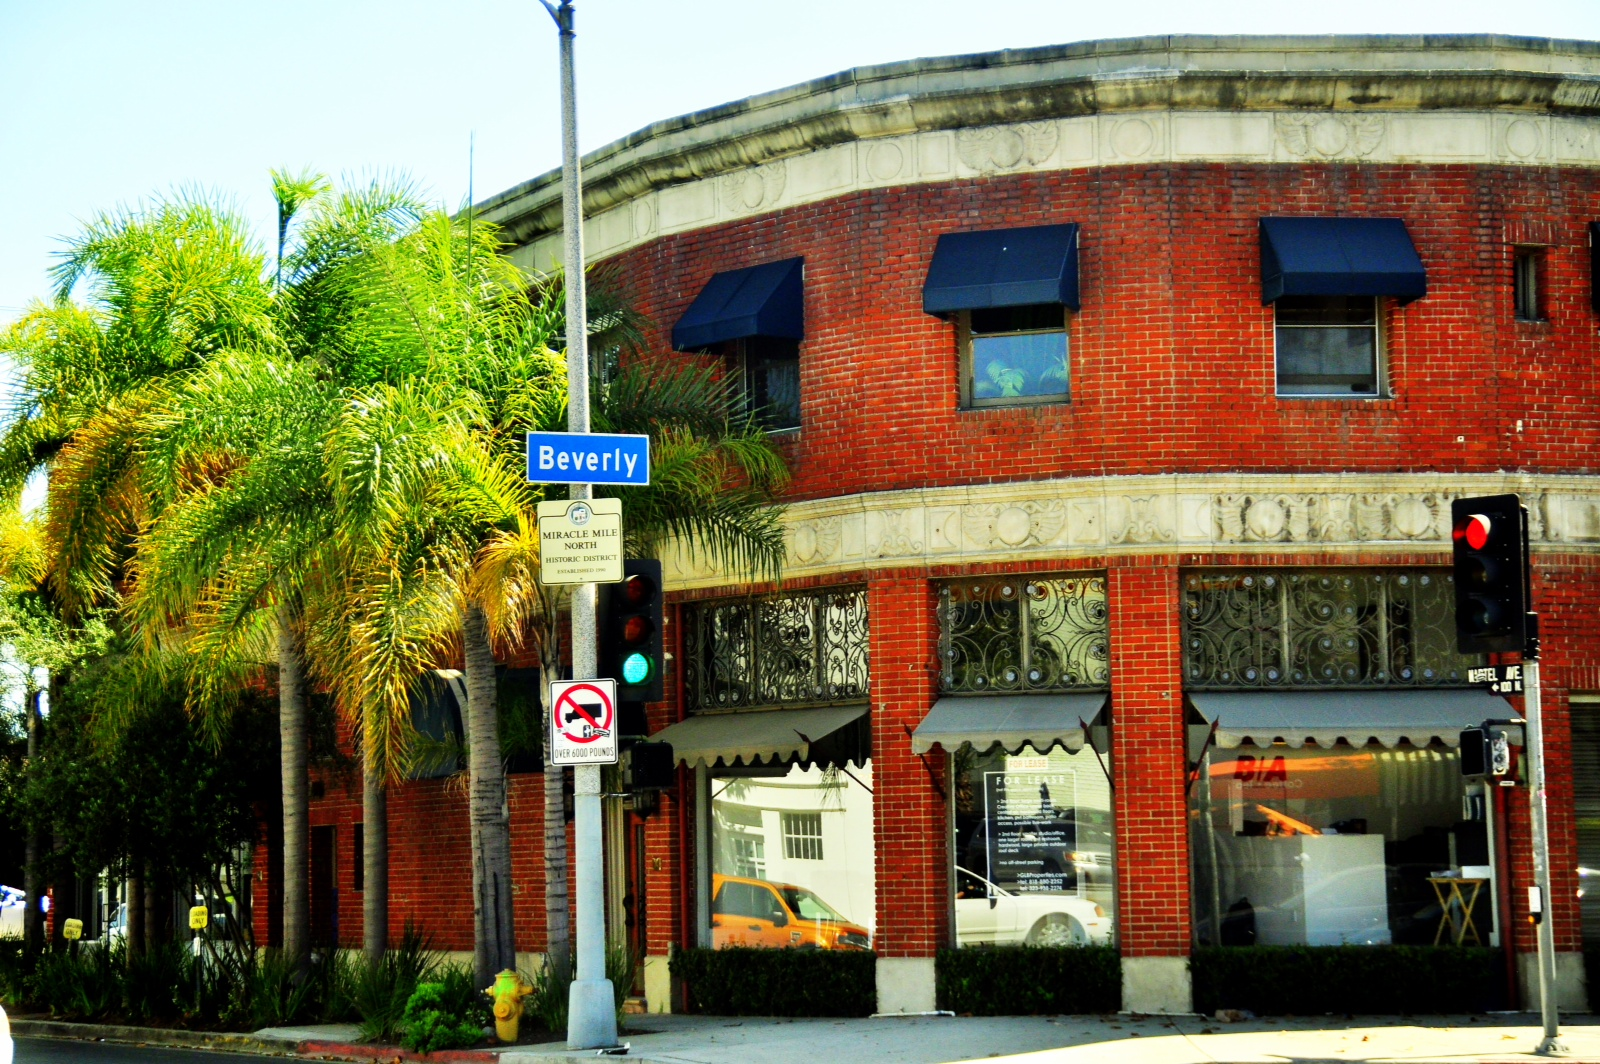 Landmark location at Beverly & Martel, near CBS TV, The Grove, Design District